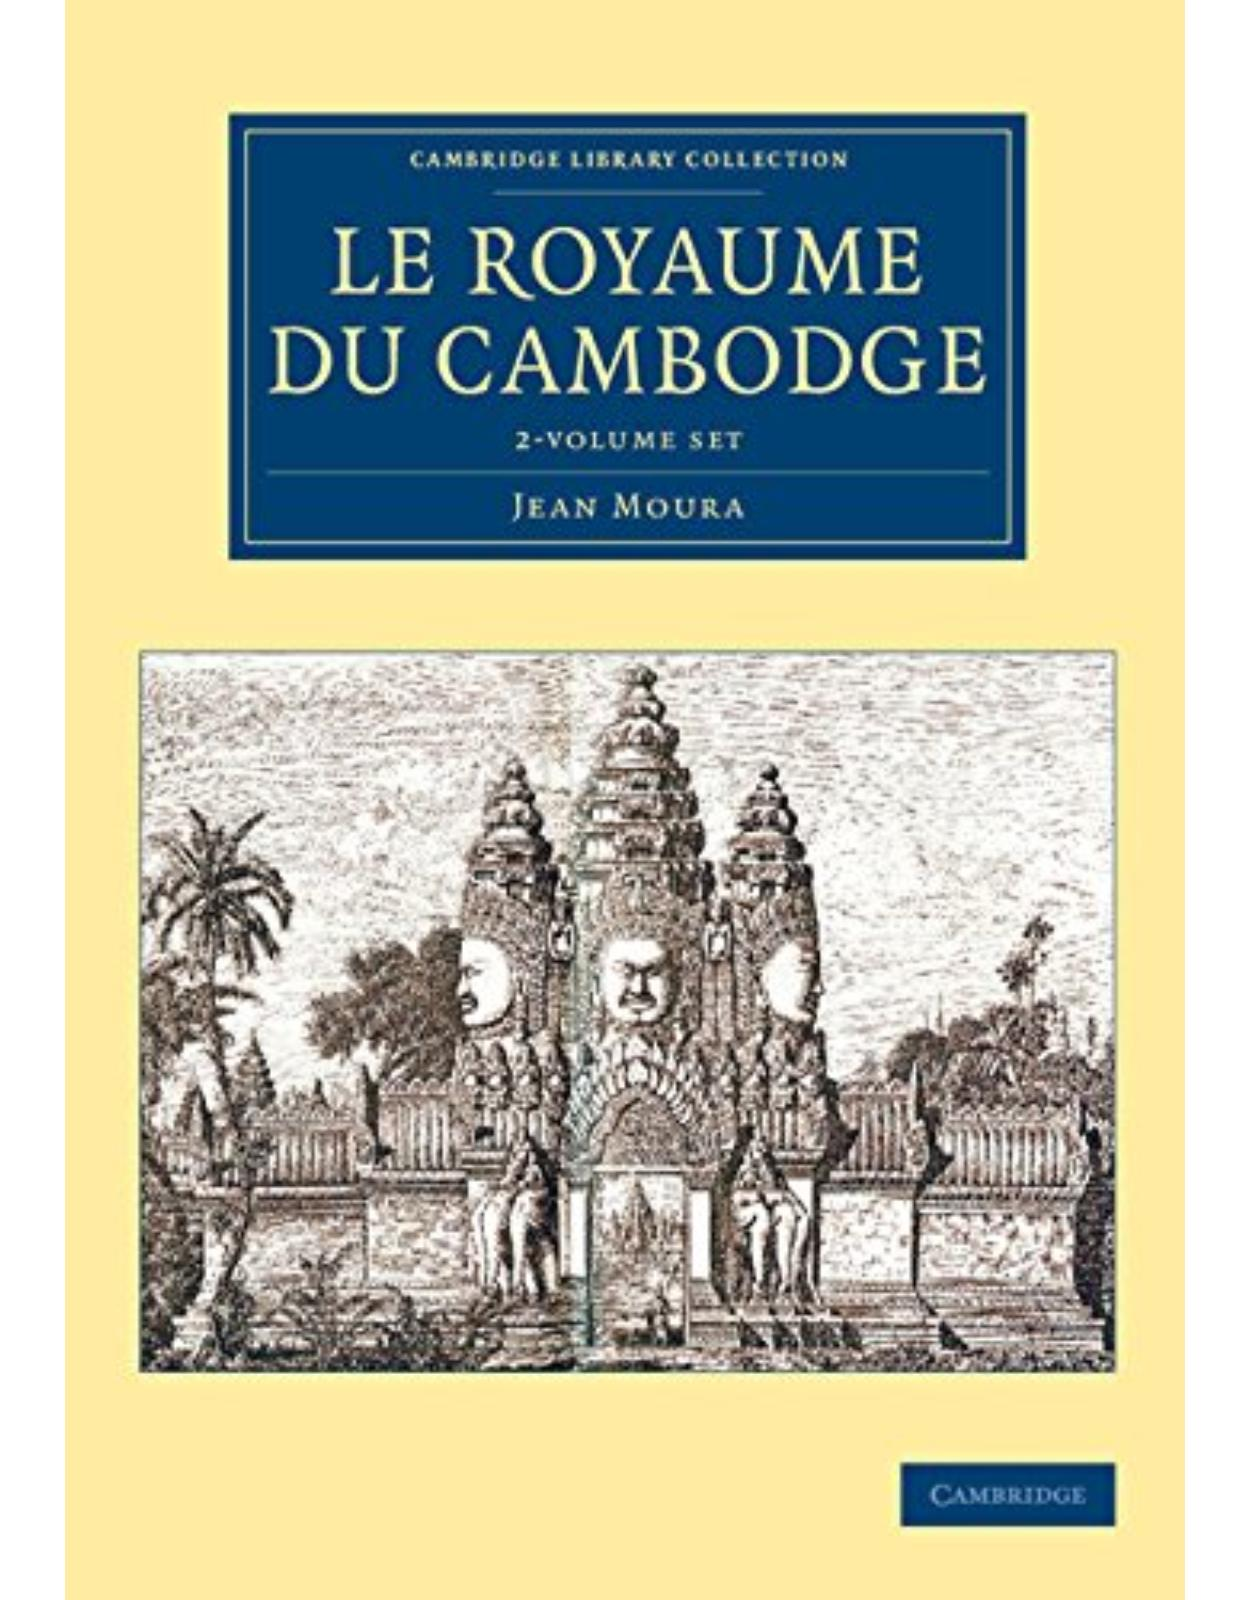 Le Royaume du Cambodge 2 Volume Set (Cambridge Library Collection - East and South-East Asian History)